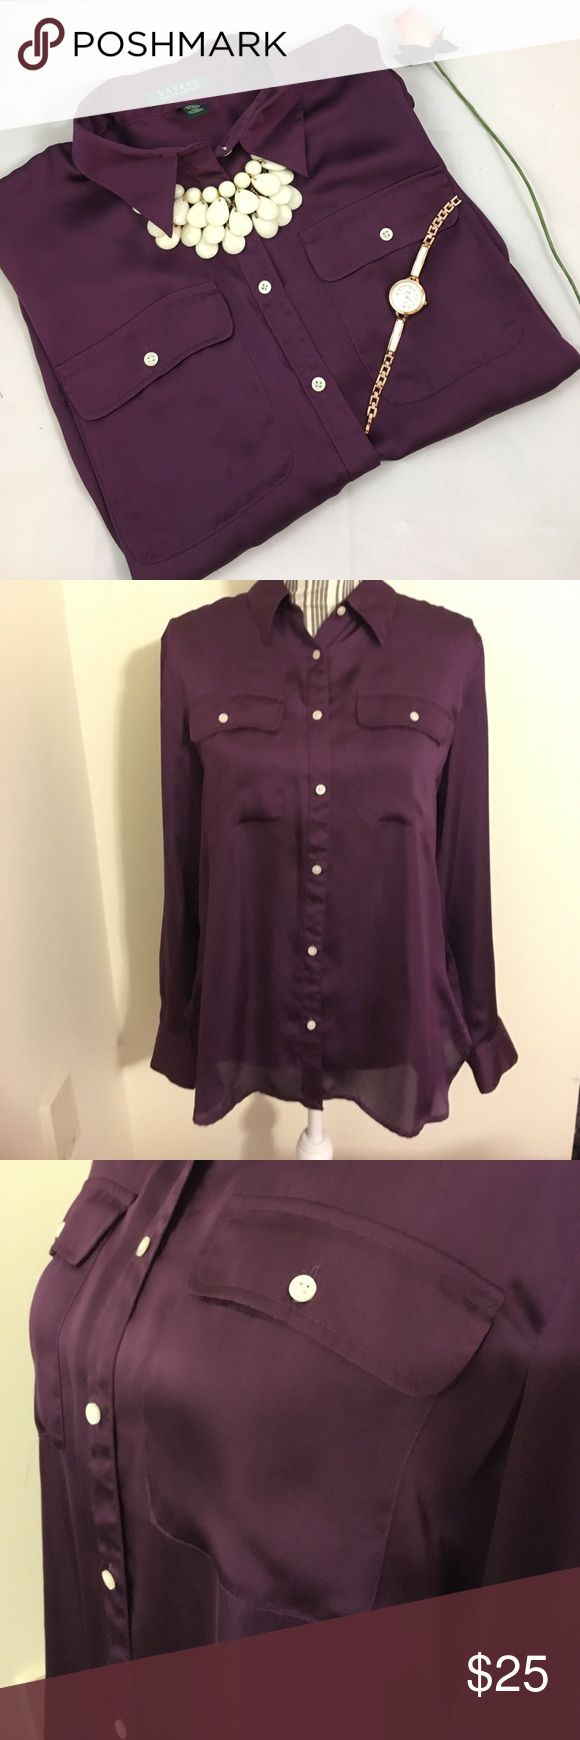 Beautiful Dark Purple Button Up Long Sleeve Blouse Beautiful Blouse worn once and in excellent condition. This fits true to size Large and is the perfect addition to your work wardrobe! There may be minor signs of wear but nothing noticeable when worn. Lauren Ralph Lauren Tops Button Down Shirts